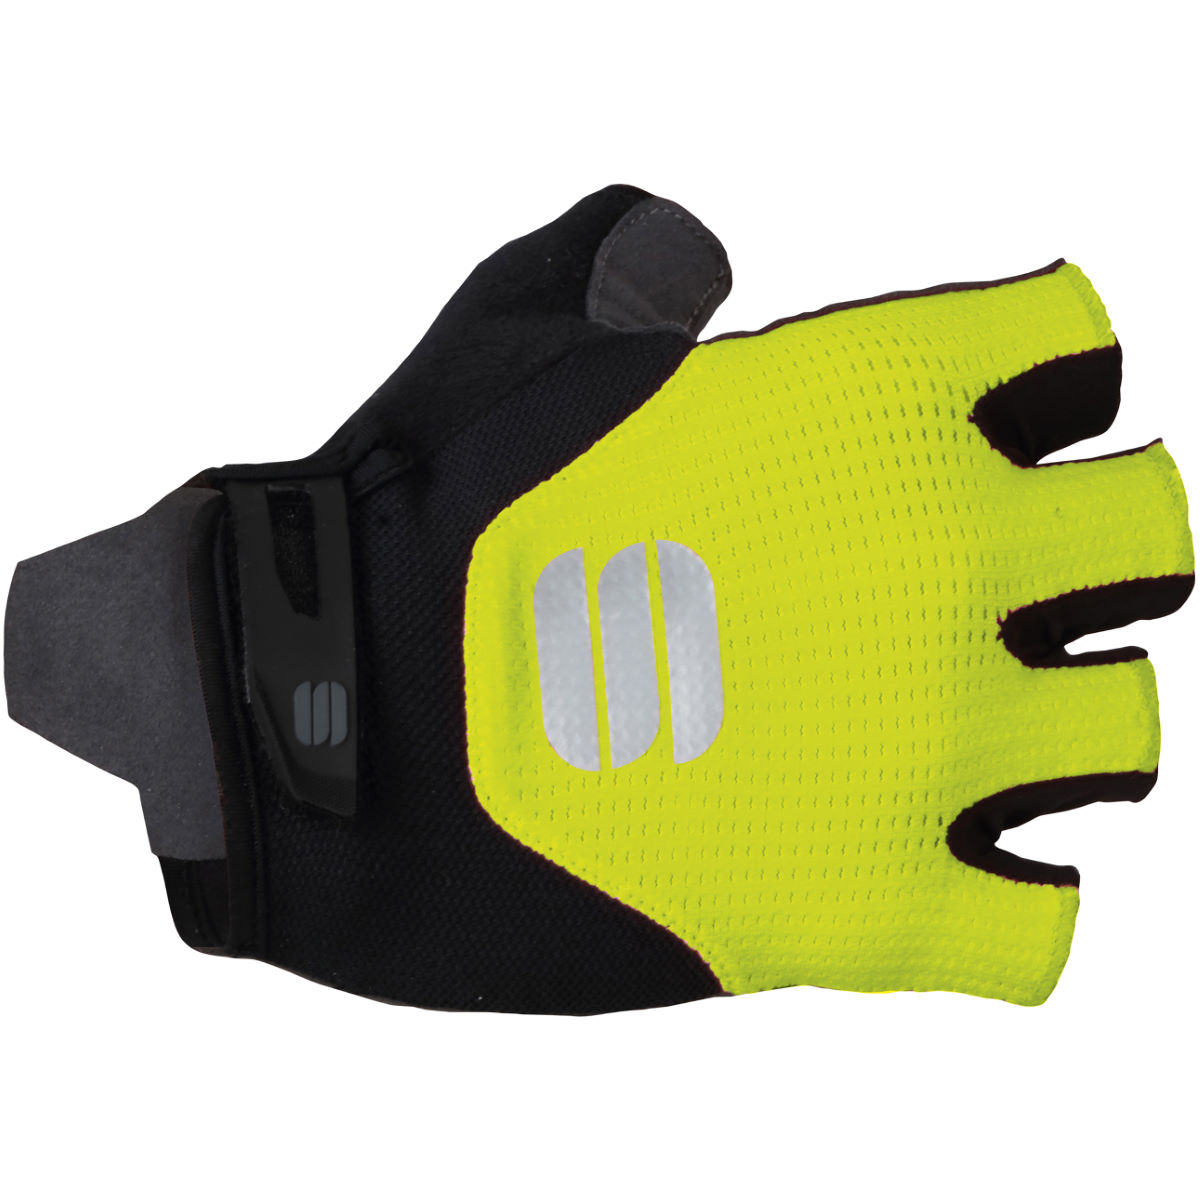 Sportful Neo Cycling Gloves - L Black/yellow  Gloves